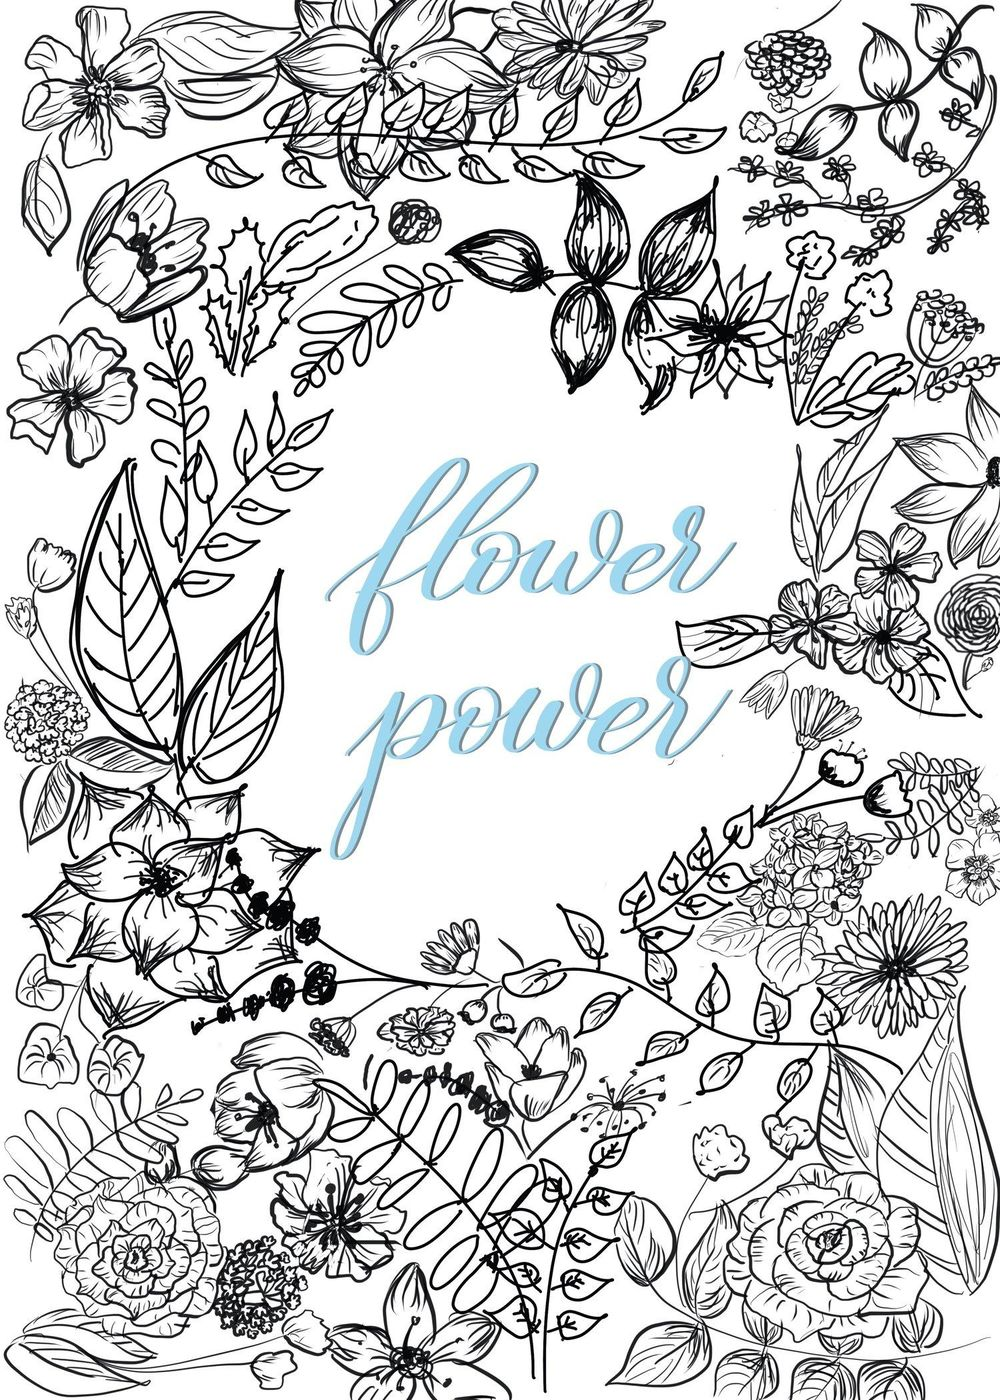 flower power / procreate drawing - image 1 - student project